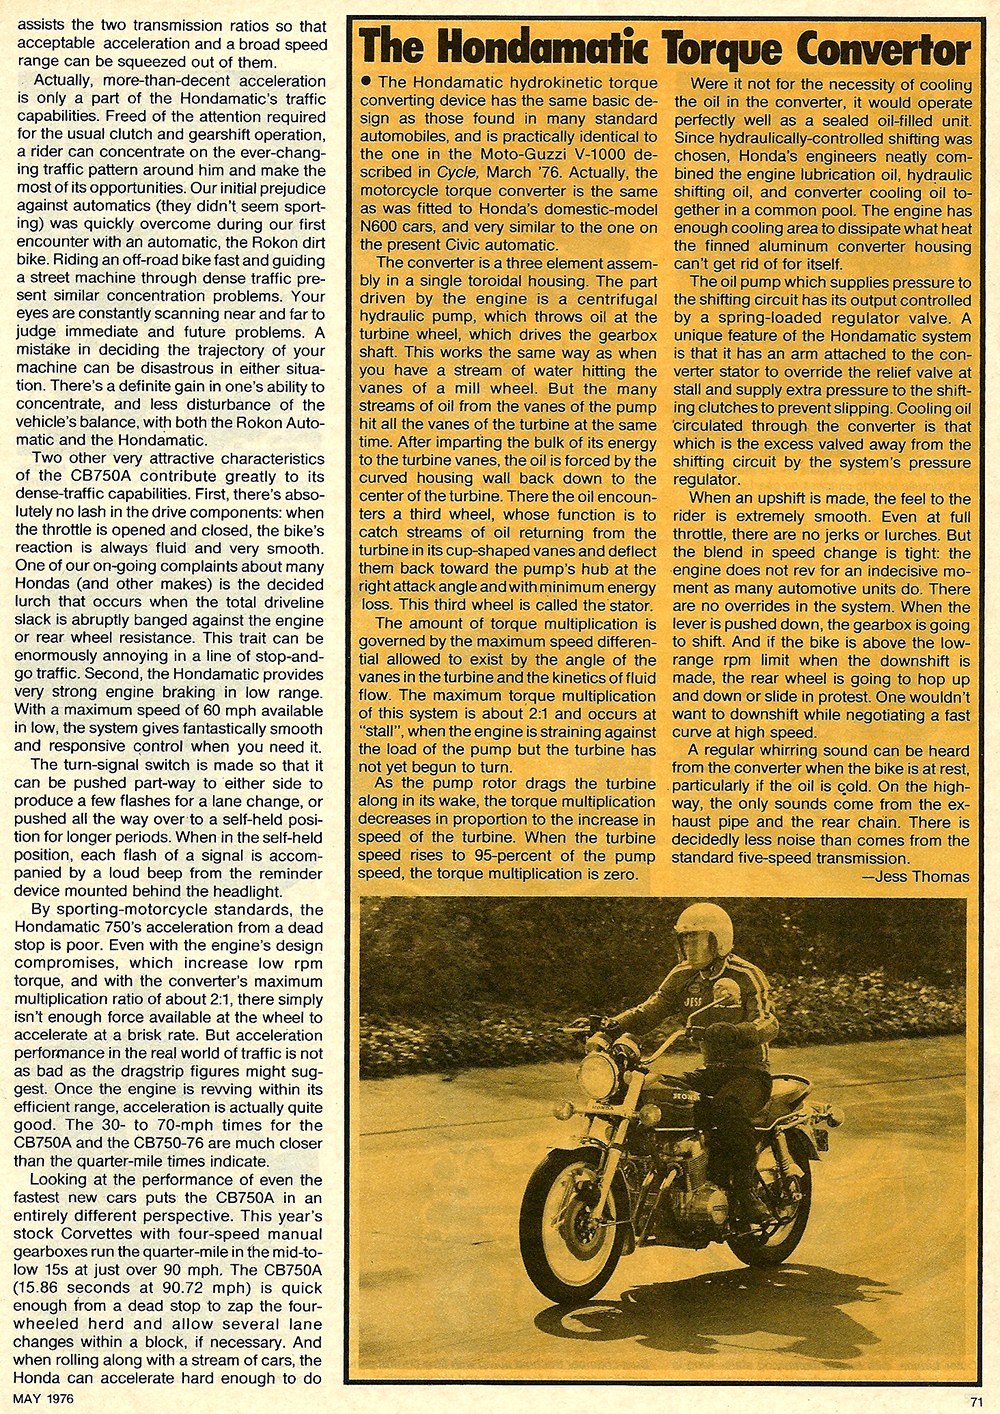 1976 Honda CB750A road test 6.JPG